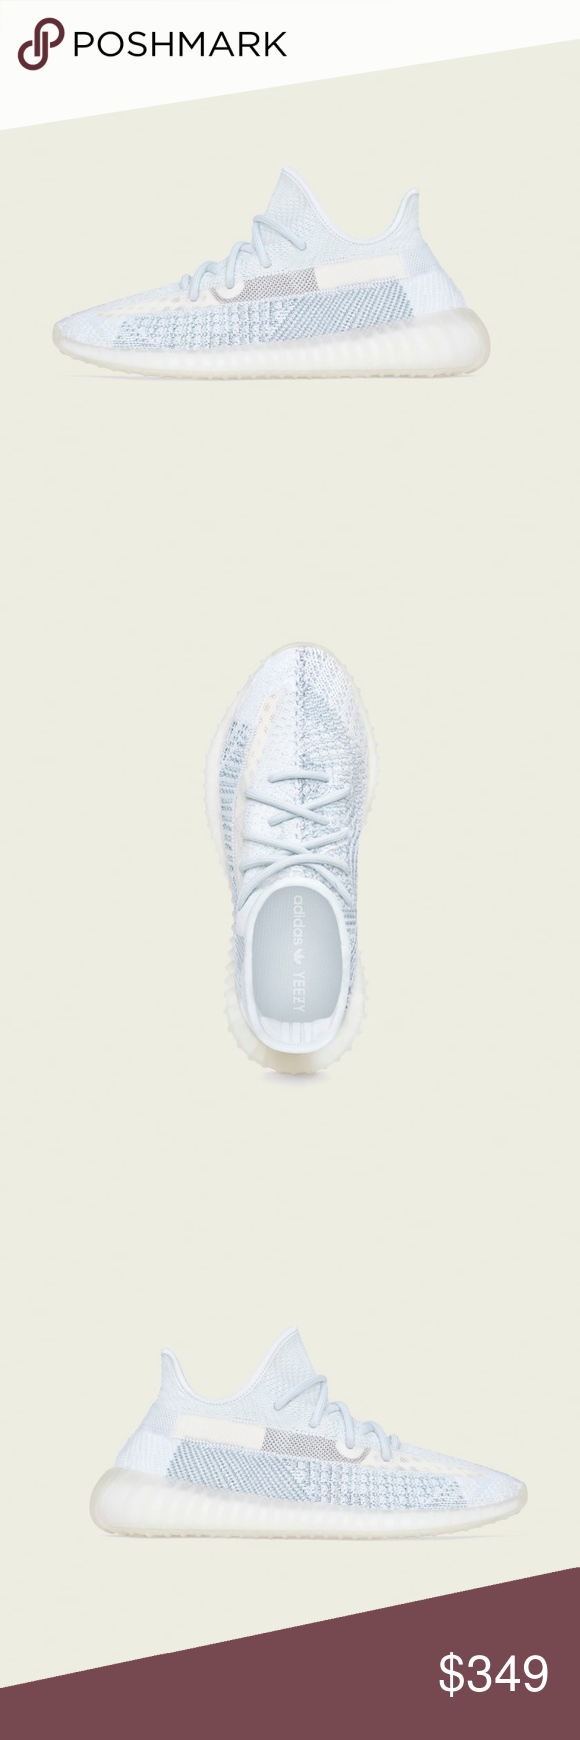 Adidas Yeezy Boost 350 V2 Cloud White Non Reflect adidas